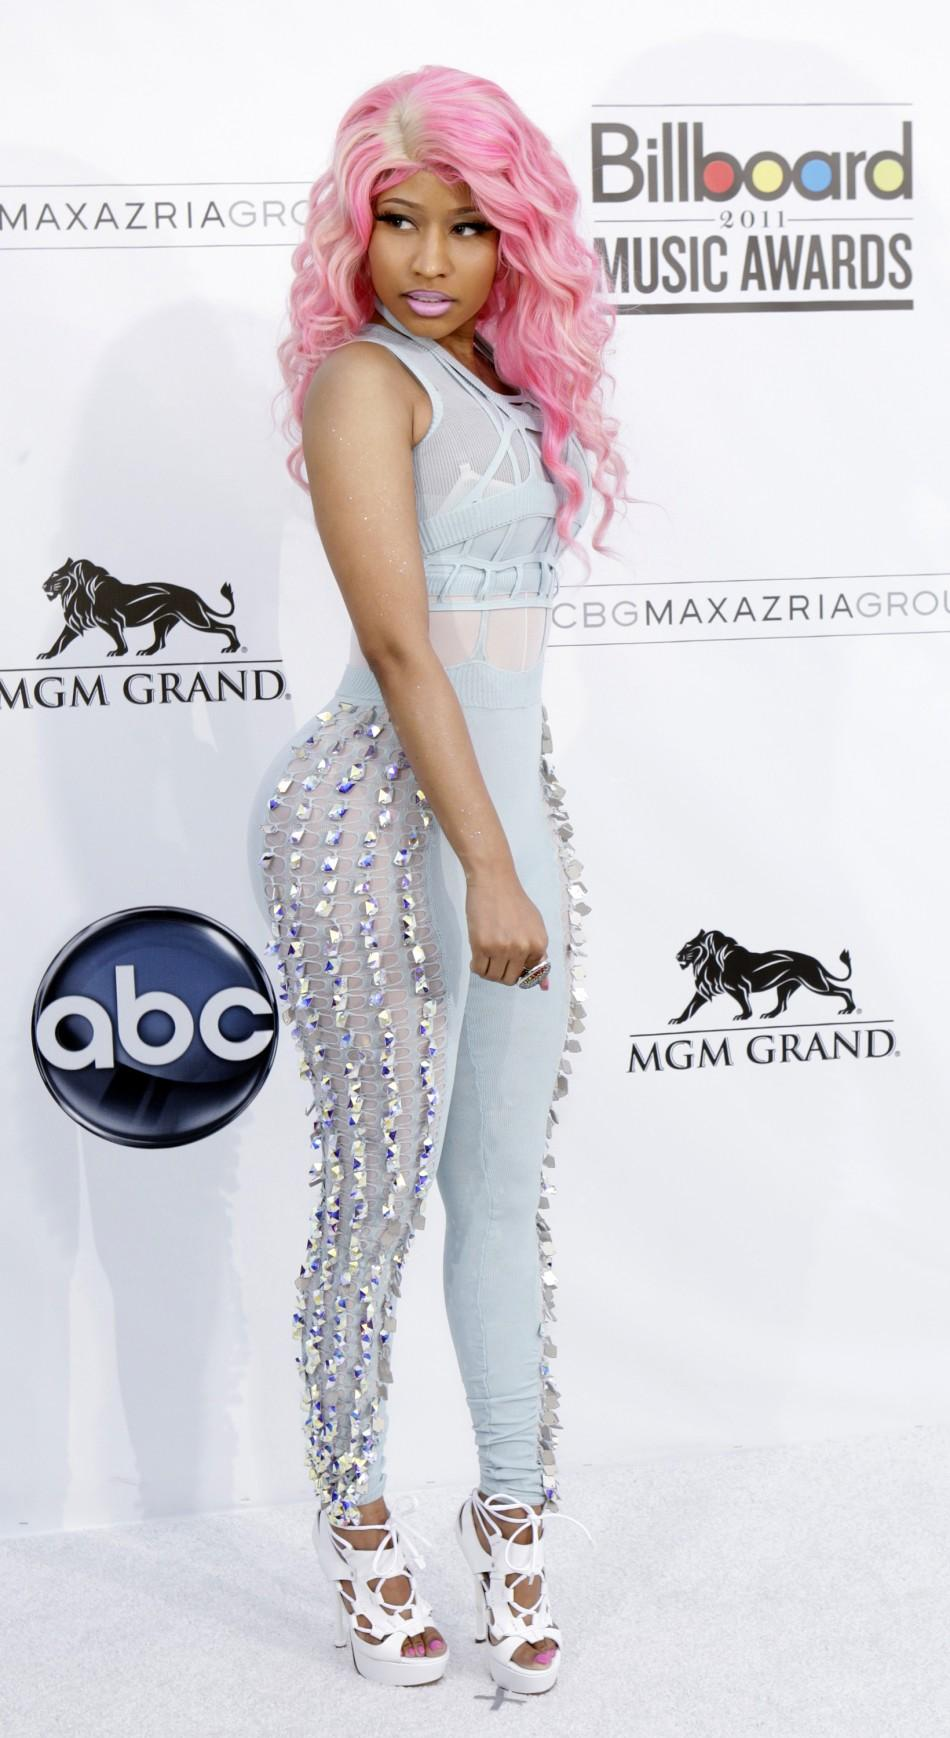 Rapper and singer-songwriter from Trinidad and Tobago Nicki Minaj arrives at the 2011 Billboard Music Awards show in Las Vegas